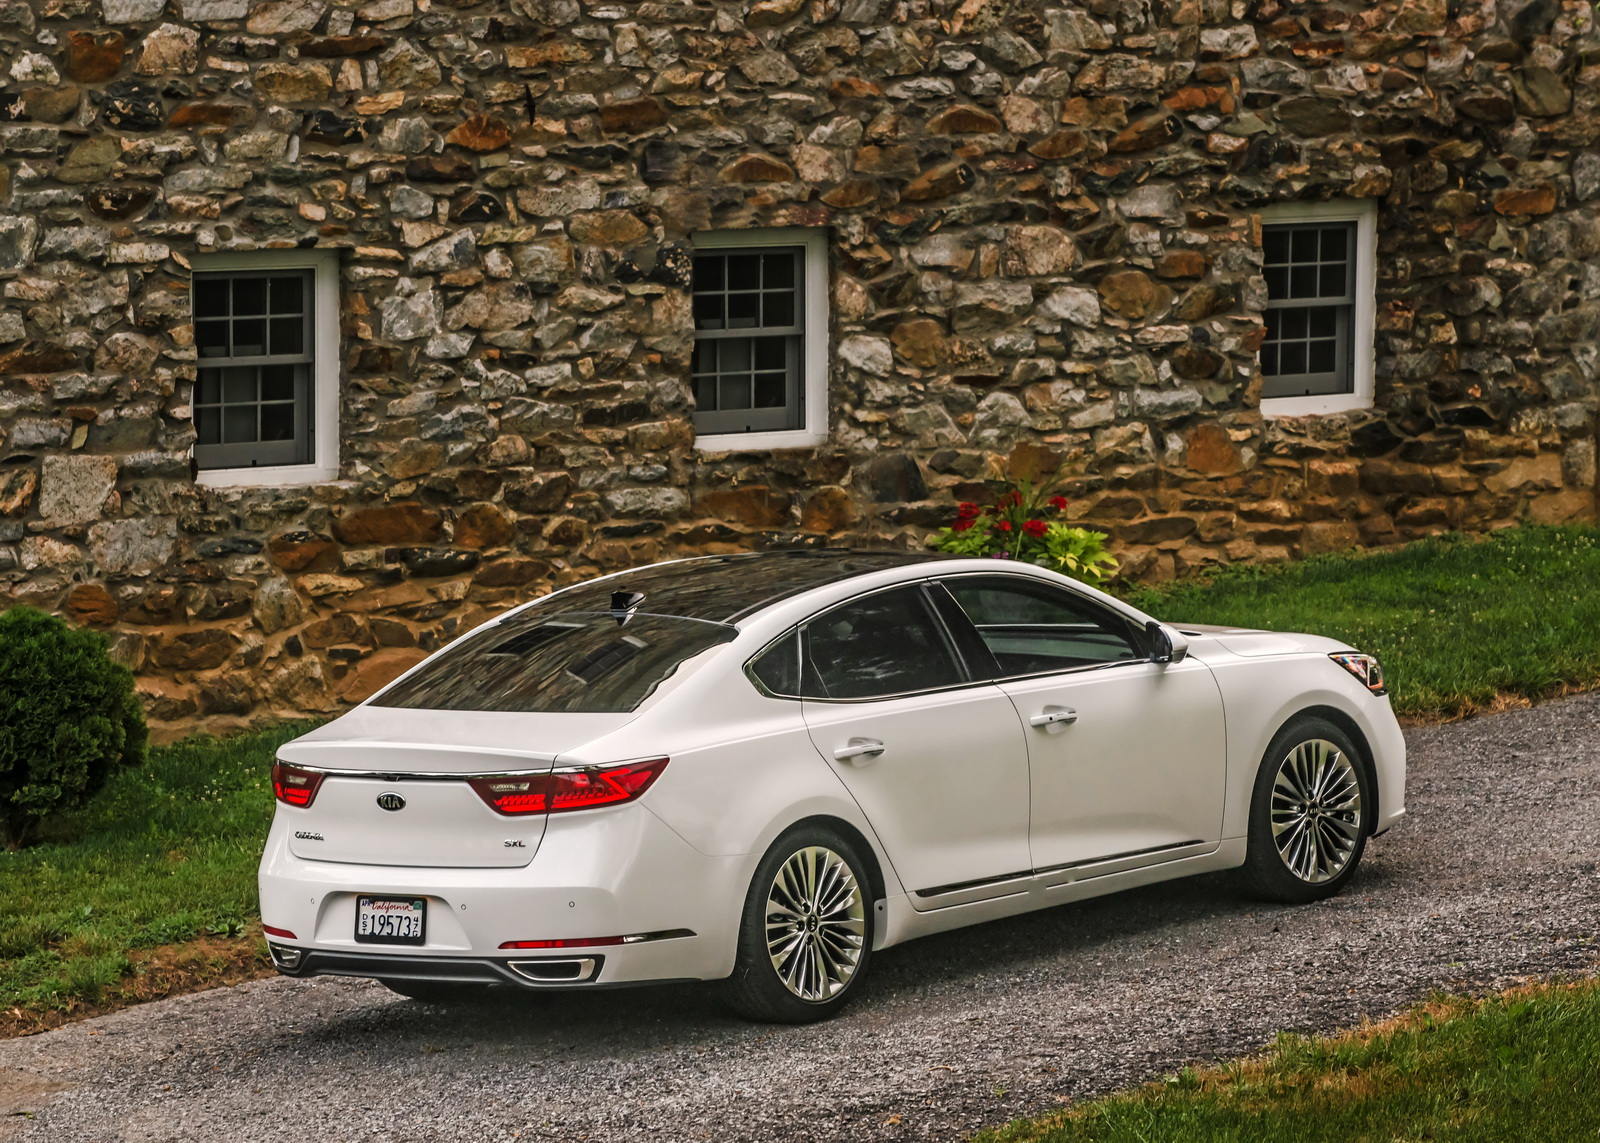 All New 2017 Kia Cadenza Brings More Luxury And Refinement